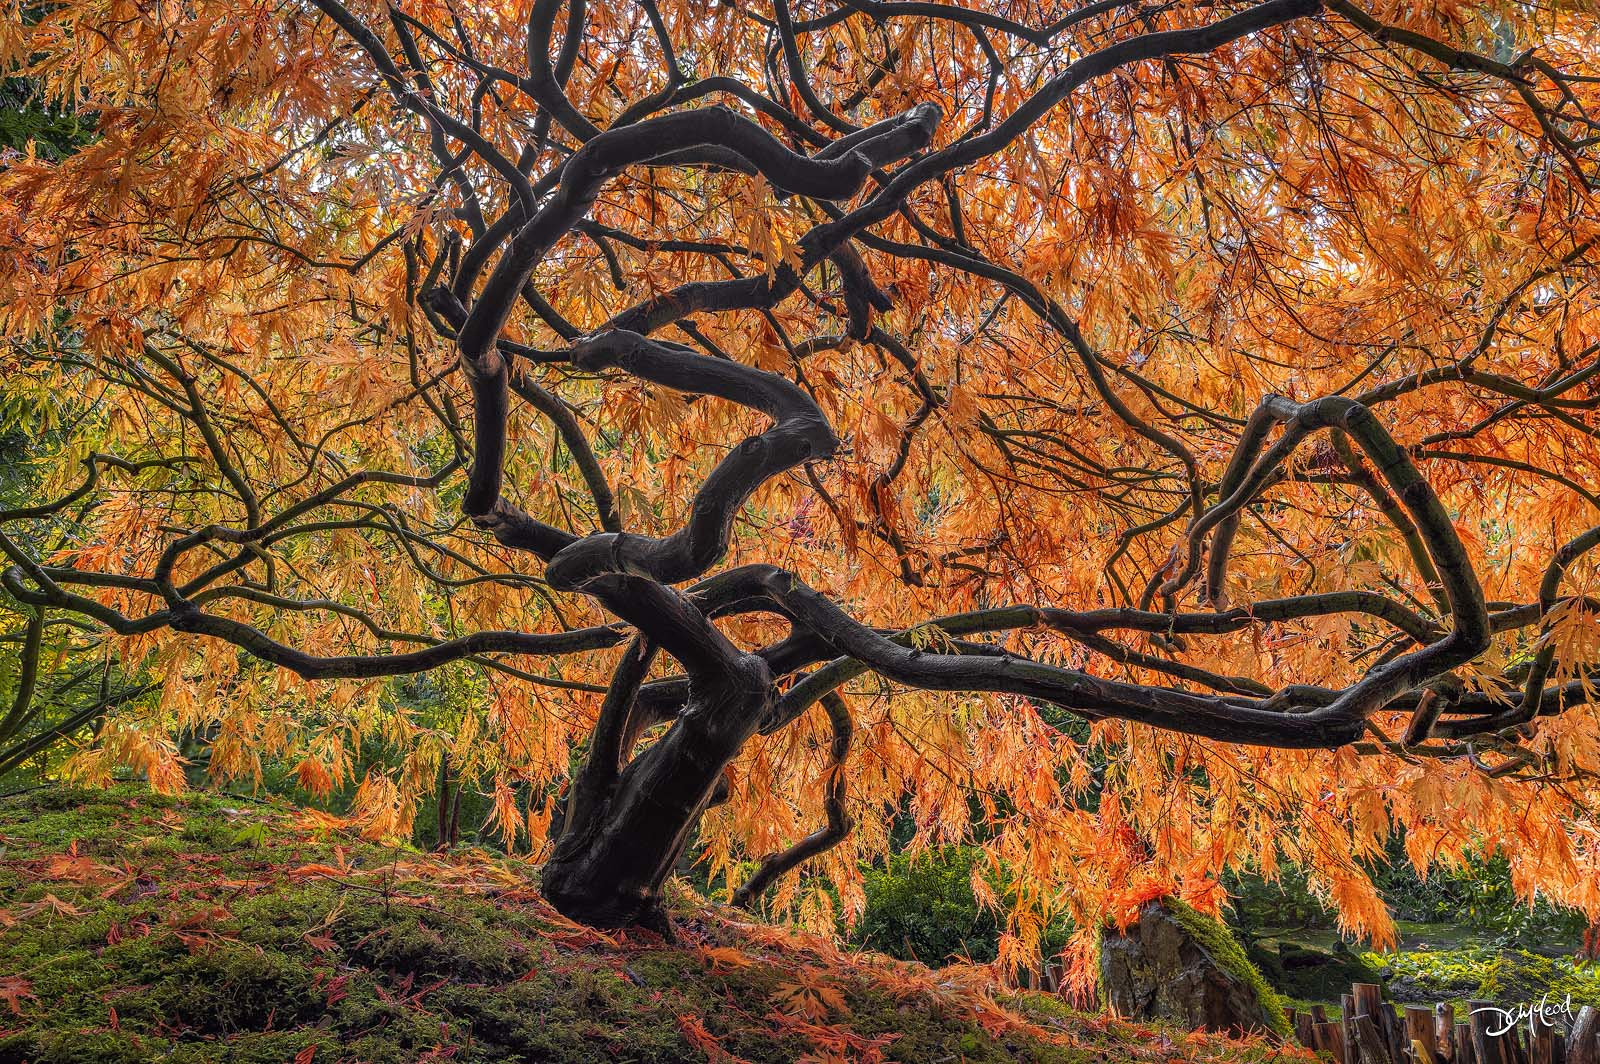 nitro, butchart, british columbia, japanese maple, autumn, mossy, photo